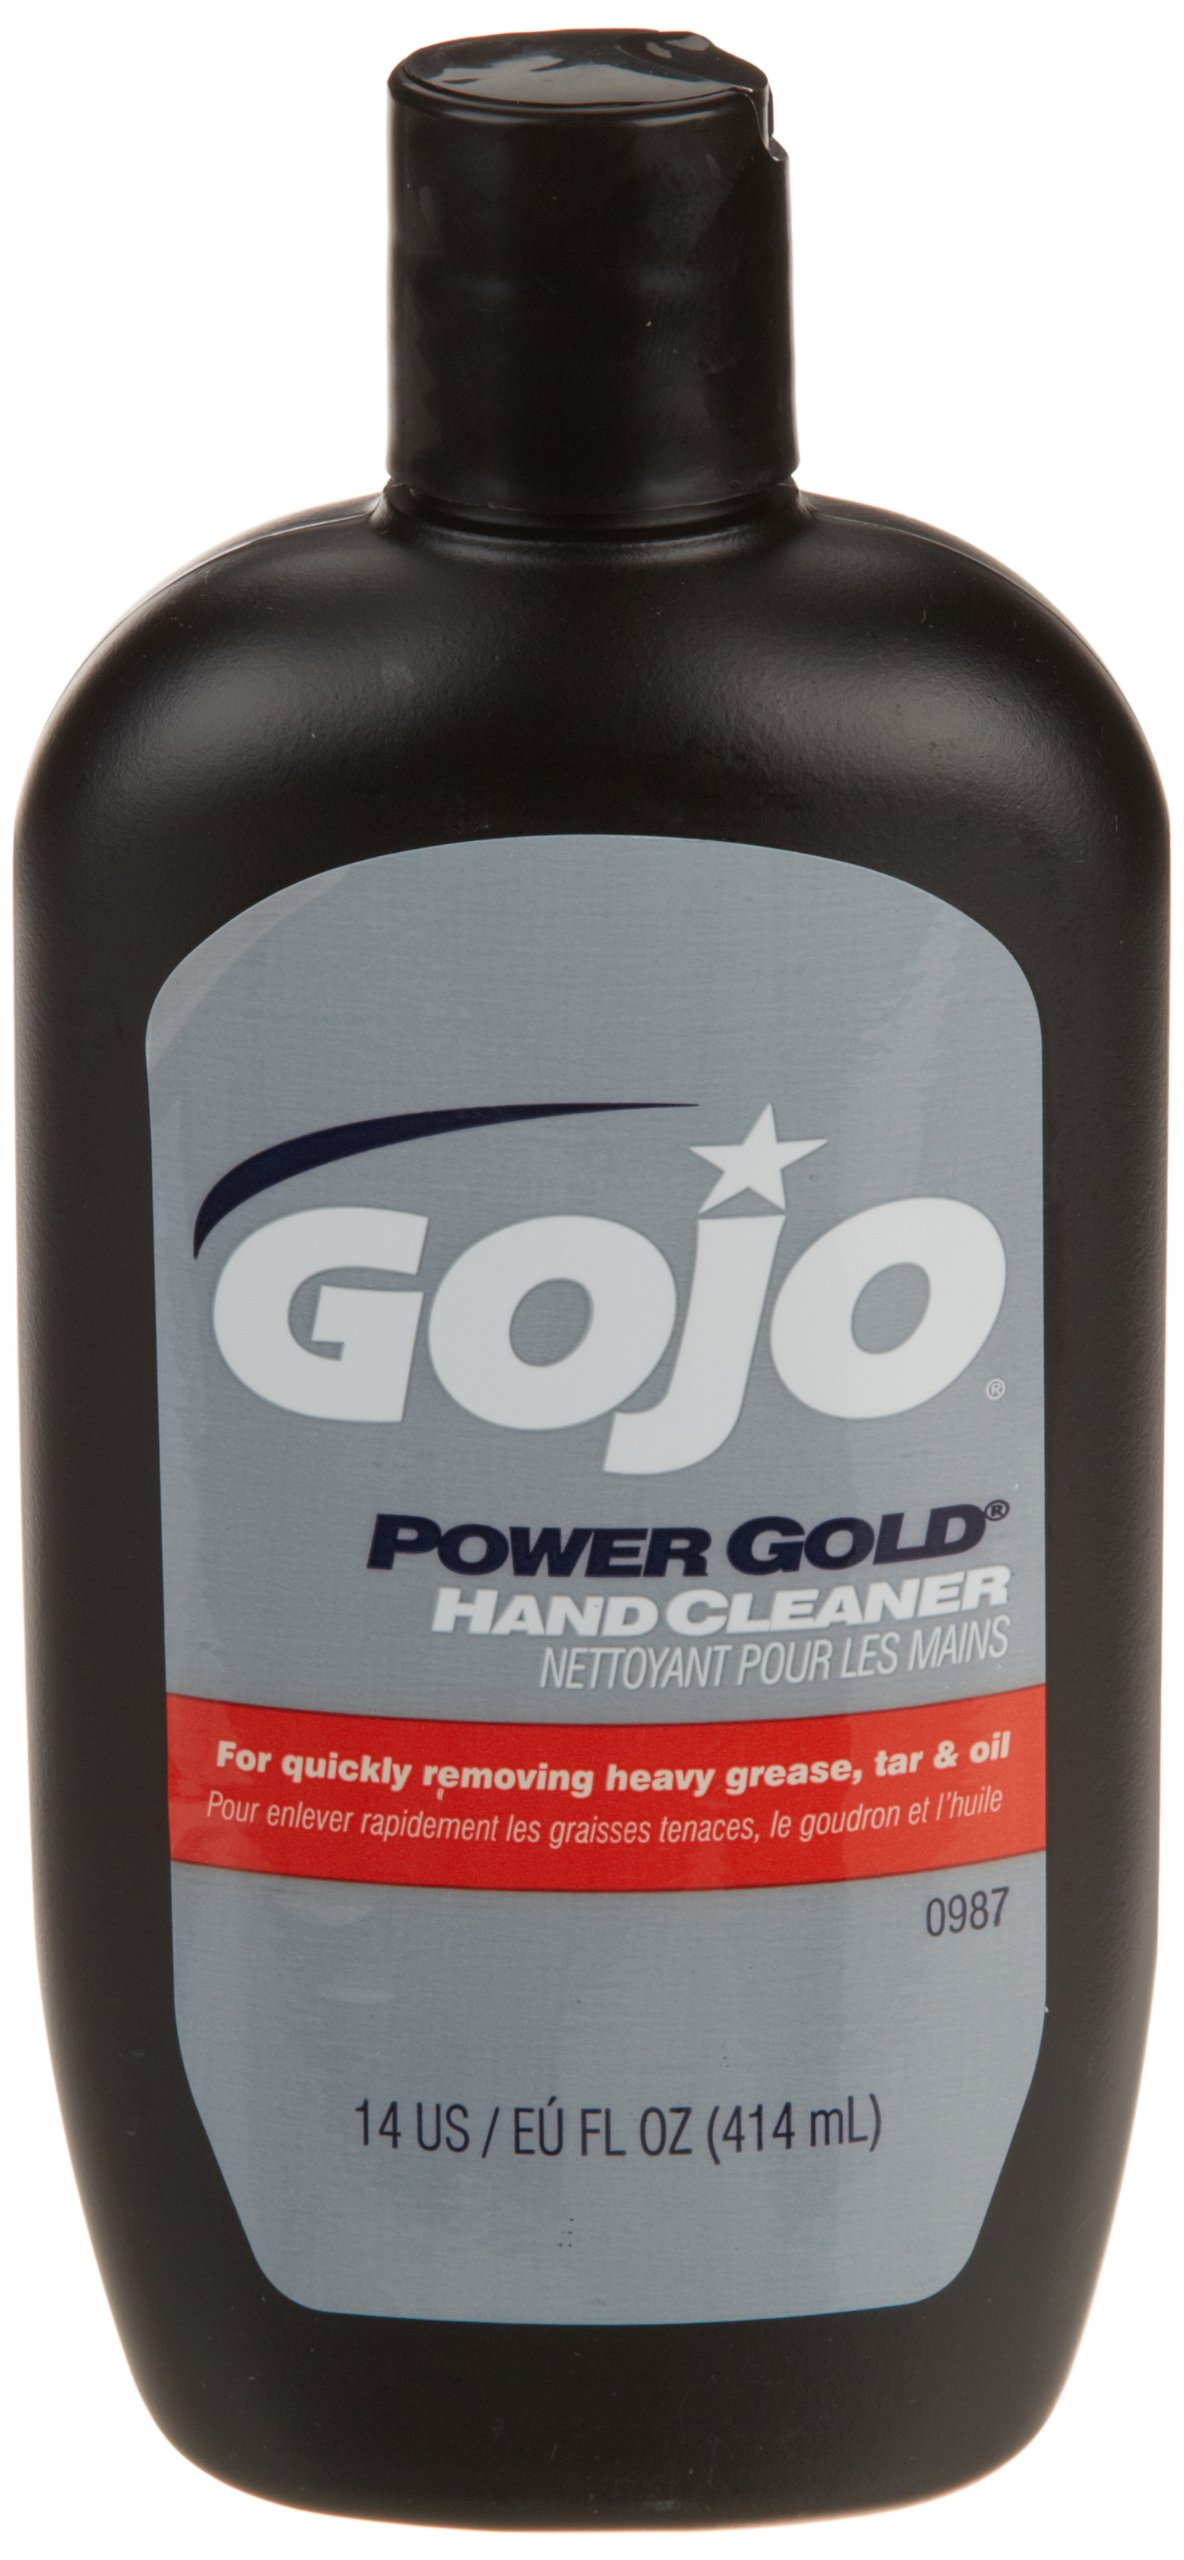 GOJO 0987-12 Power Gold Hand Cleaner, 14 oz Squeeze Bottle (Pack of 12)